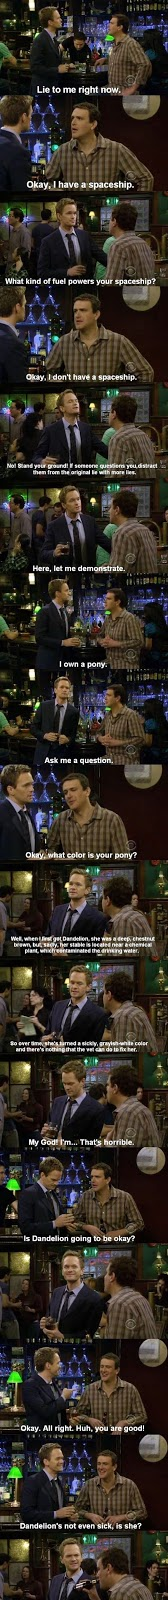 The best scene from How I Met Your Mother, Barney and Marshall.